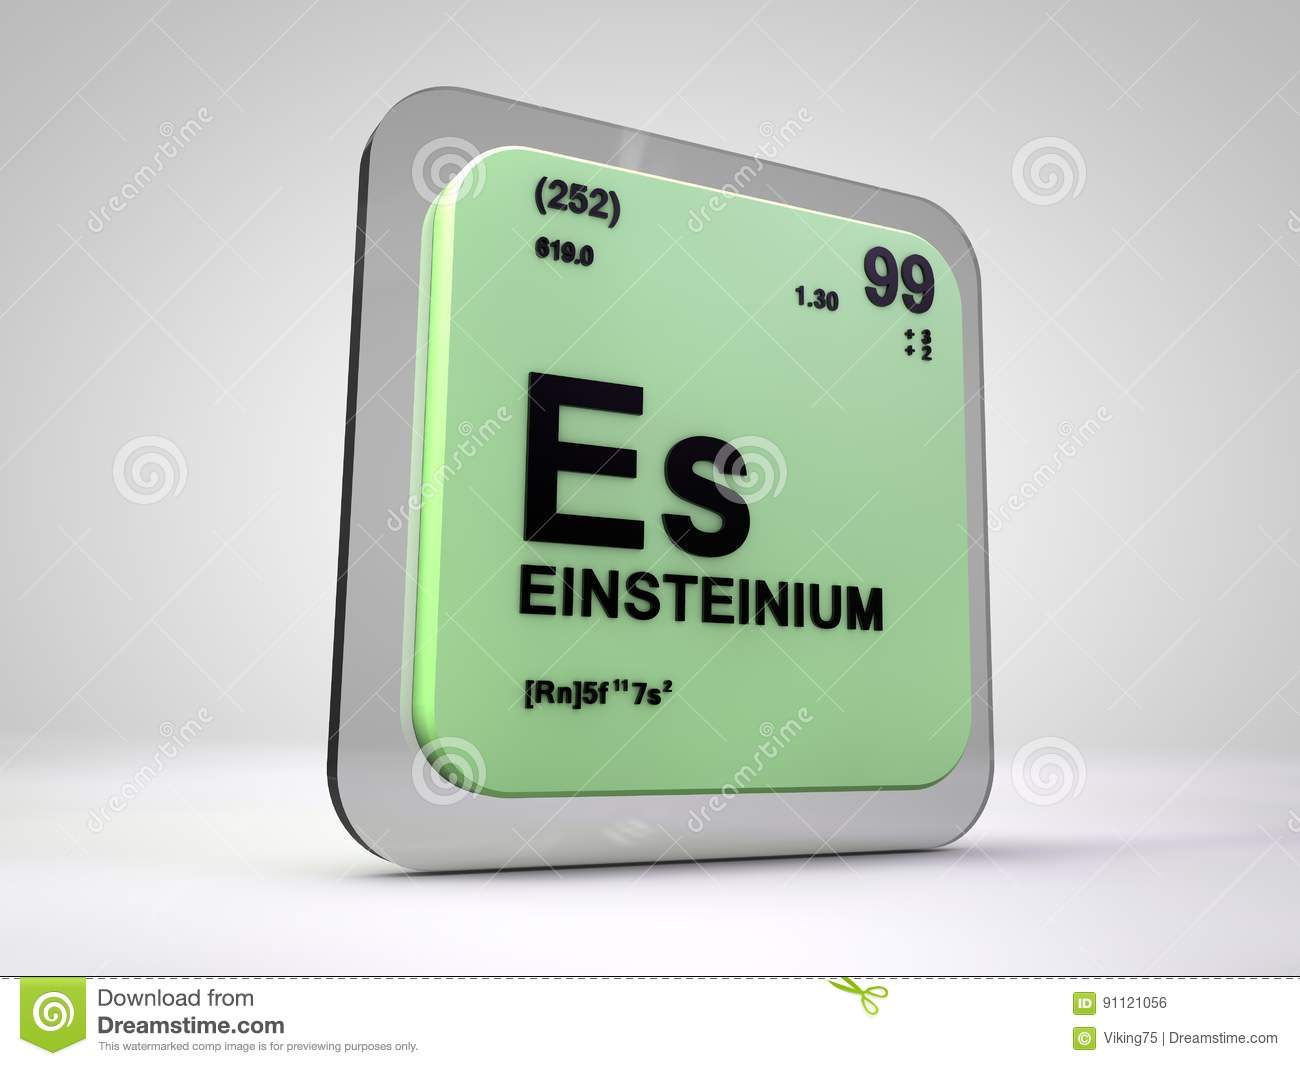 Einsteinium periodic table choice image periodic table images einsteinium es chemical element periodic table stock einsteinium es chemical element periodic table gamestrikefo choice image gamestrikefo Image collections